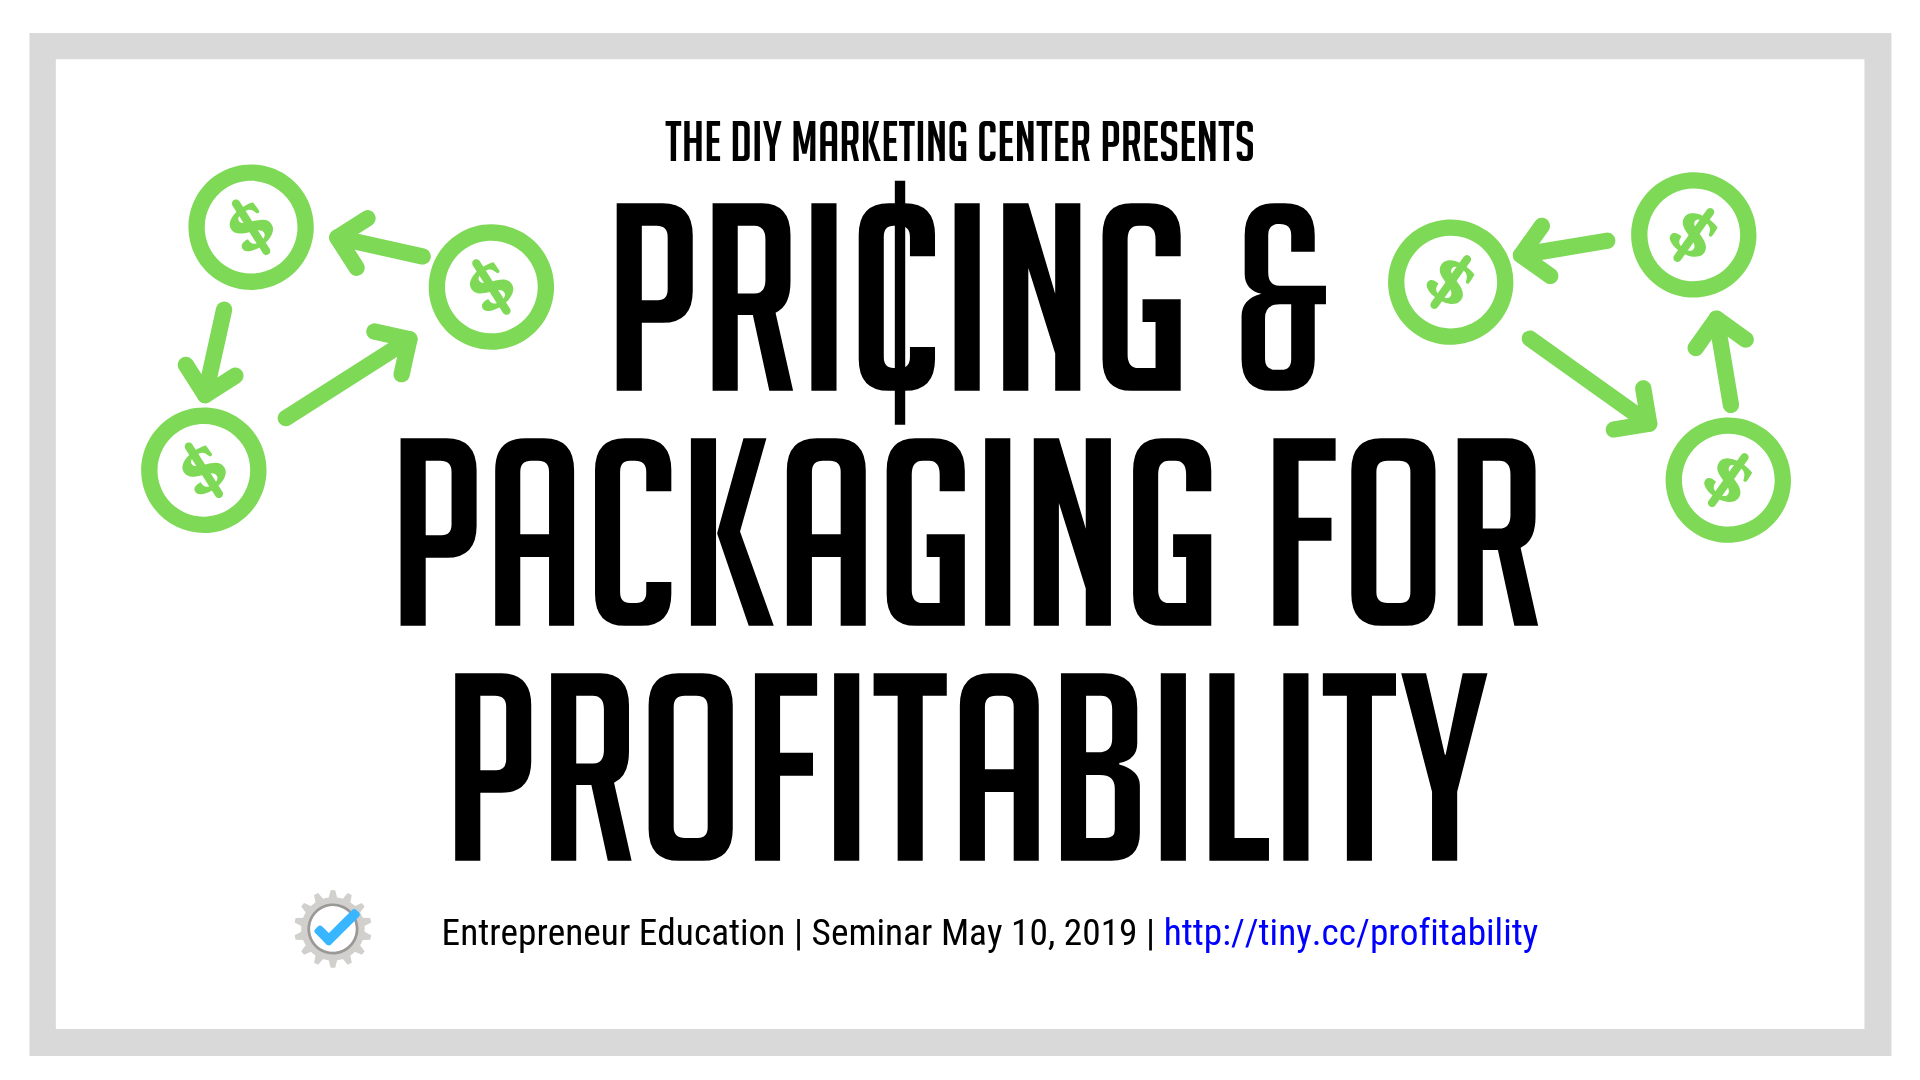 Pricing & Packaging for Profitability Seminar on Friday